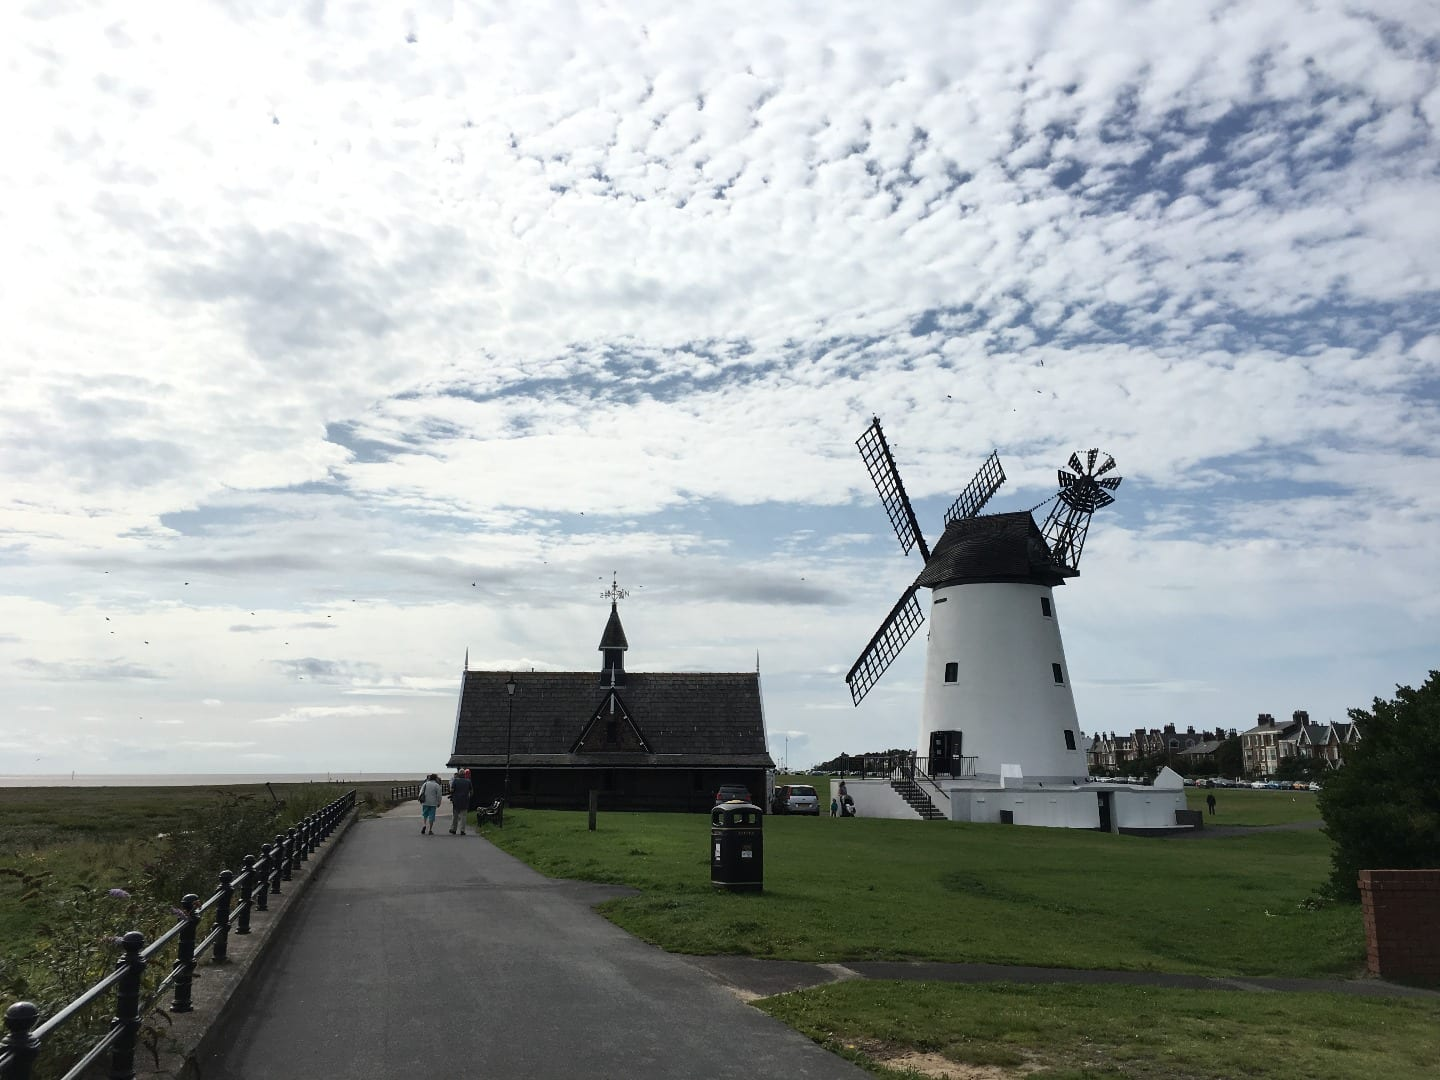 Lytham Windmill at Lytham Green on the Fylde Coast Seafront